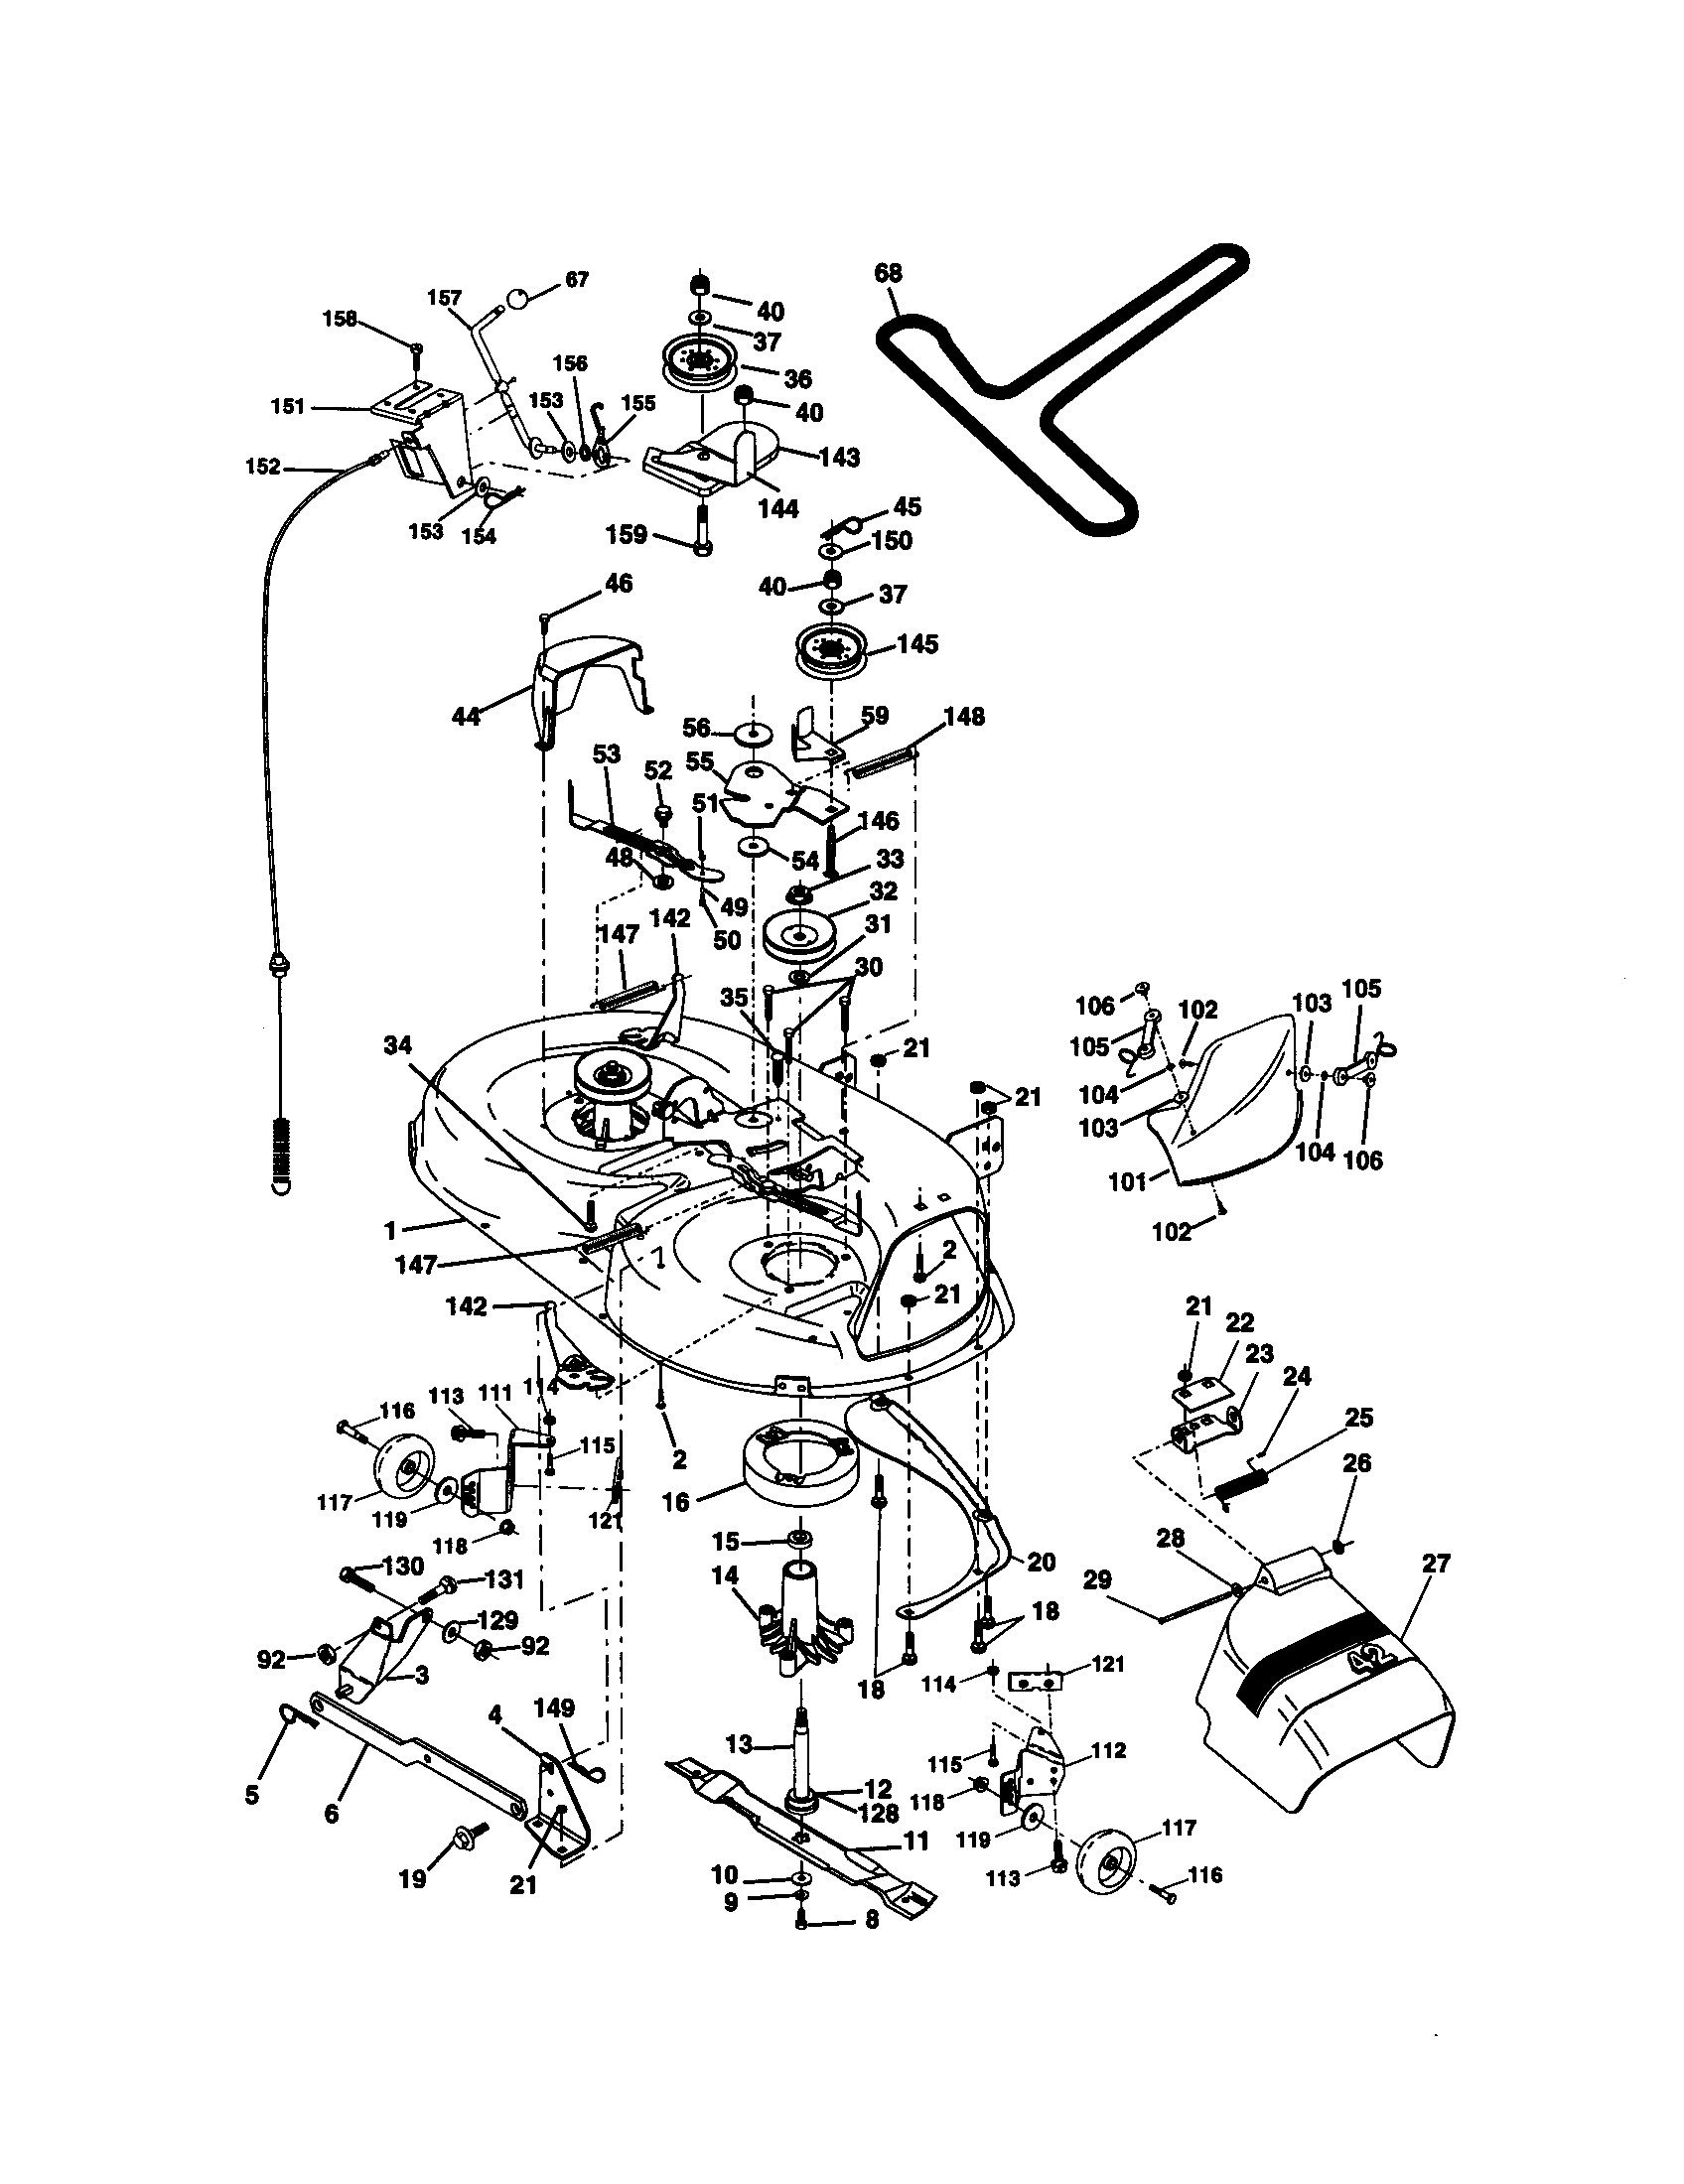 Diagram Of Briggs and Stratton Lawn Mower Engine Craftsman Model Lawn Tractor Genuine Parts Of Diagram Of Briggs and Stratton Lawn Mower Engine